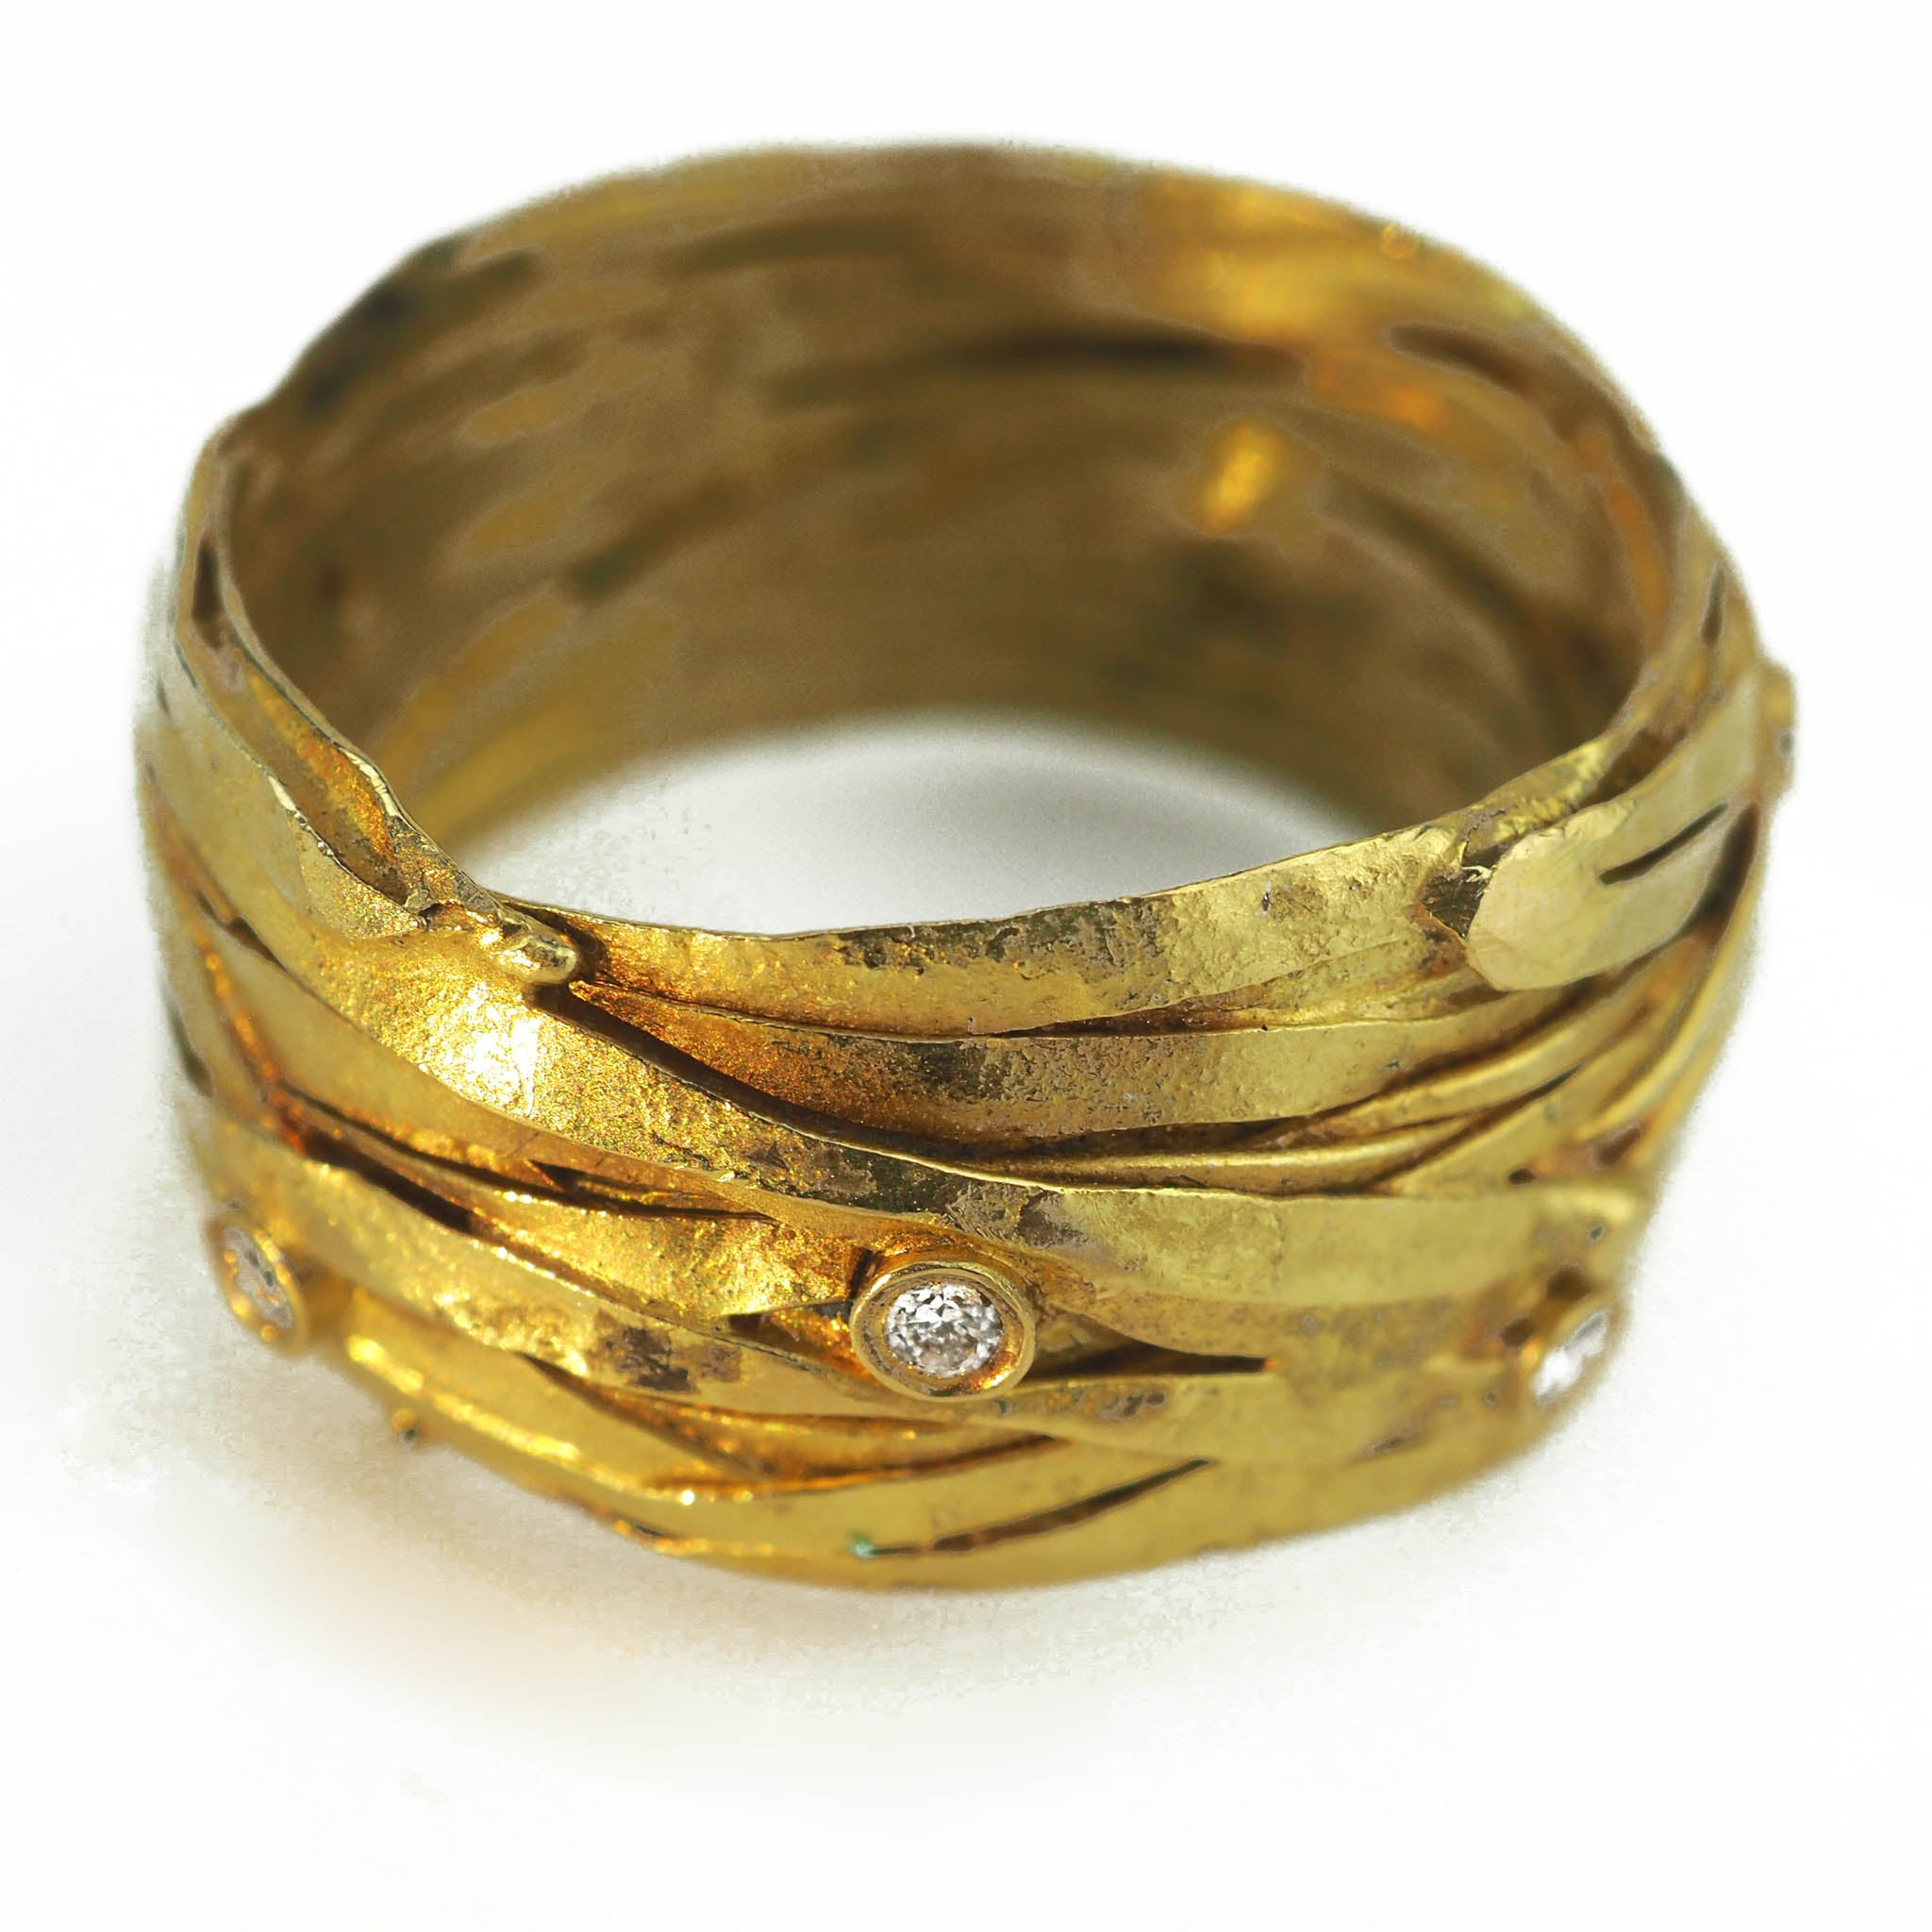 Carlow, Shimara – 18ct Gold Wrap Ring With Diamonds | Shimara Carlow | Primavera Gallery